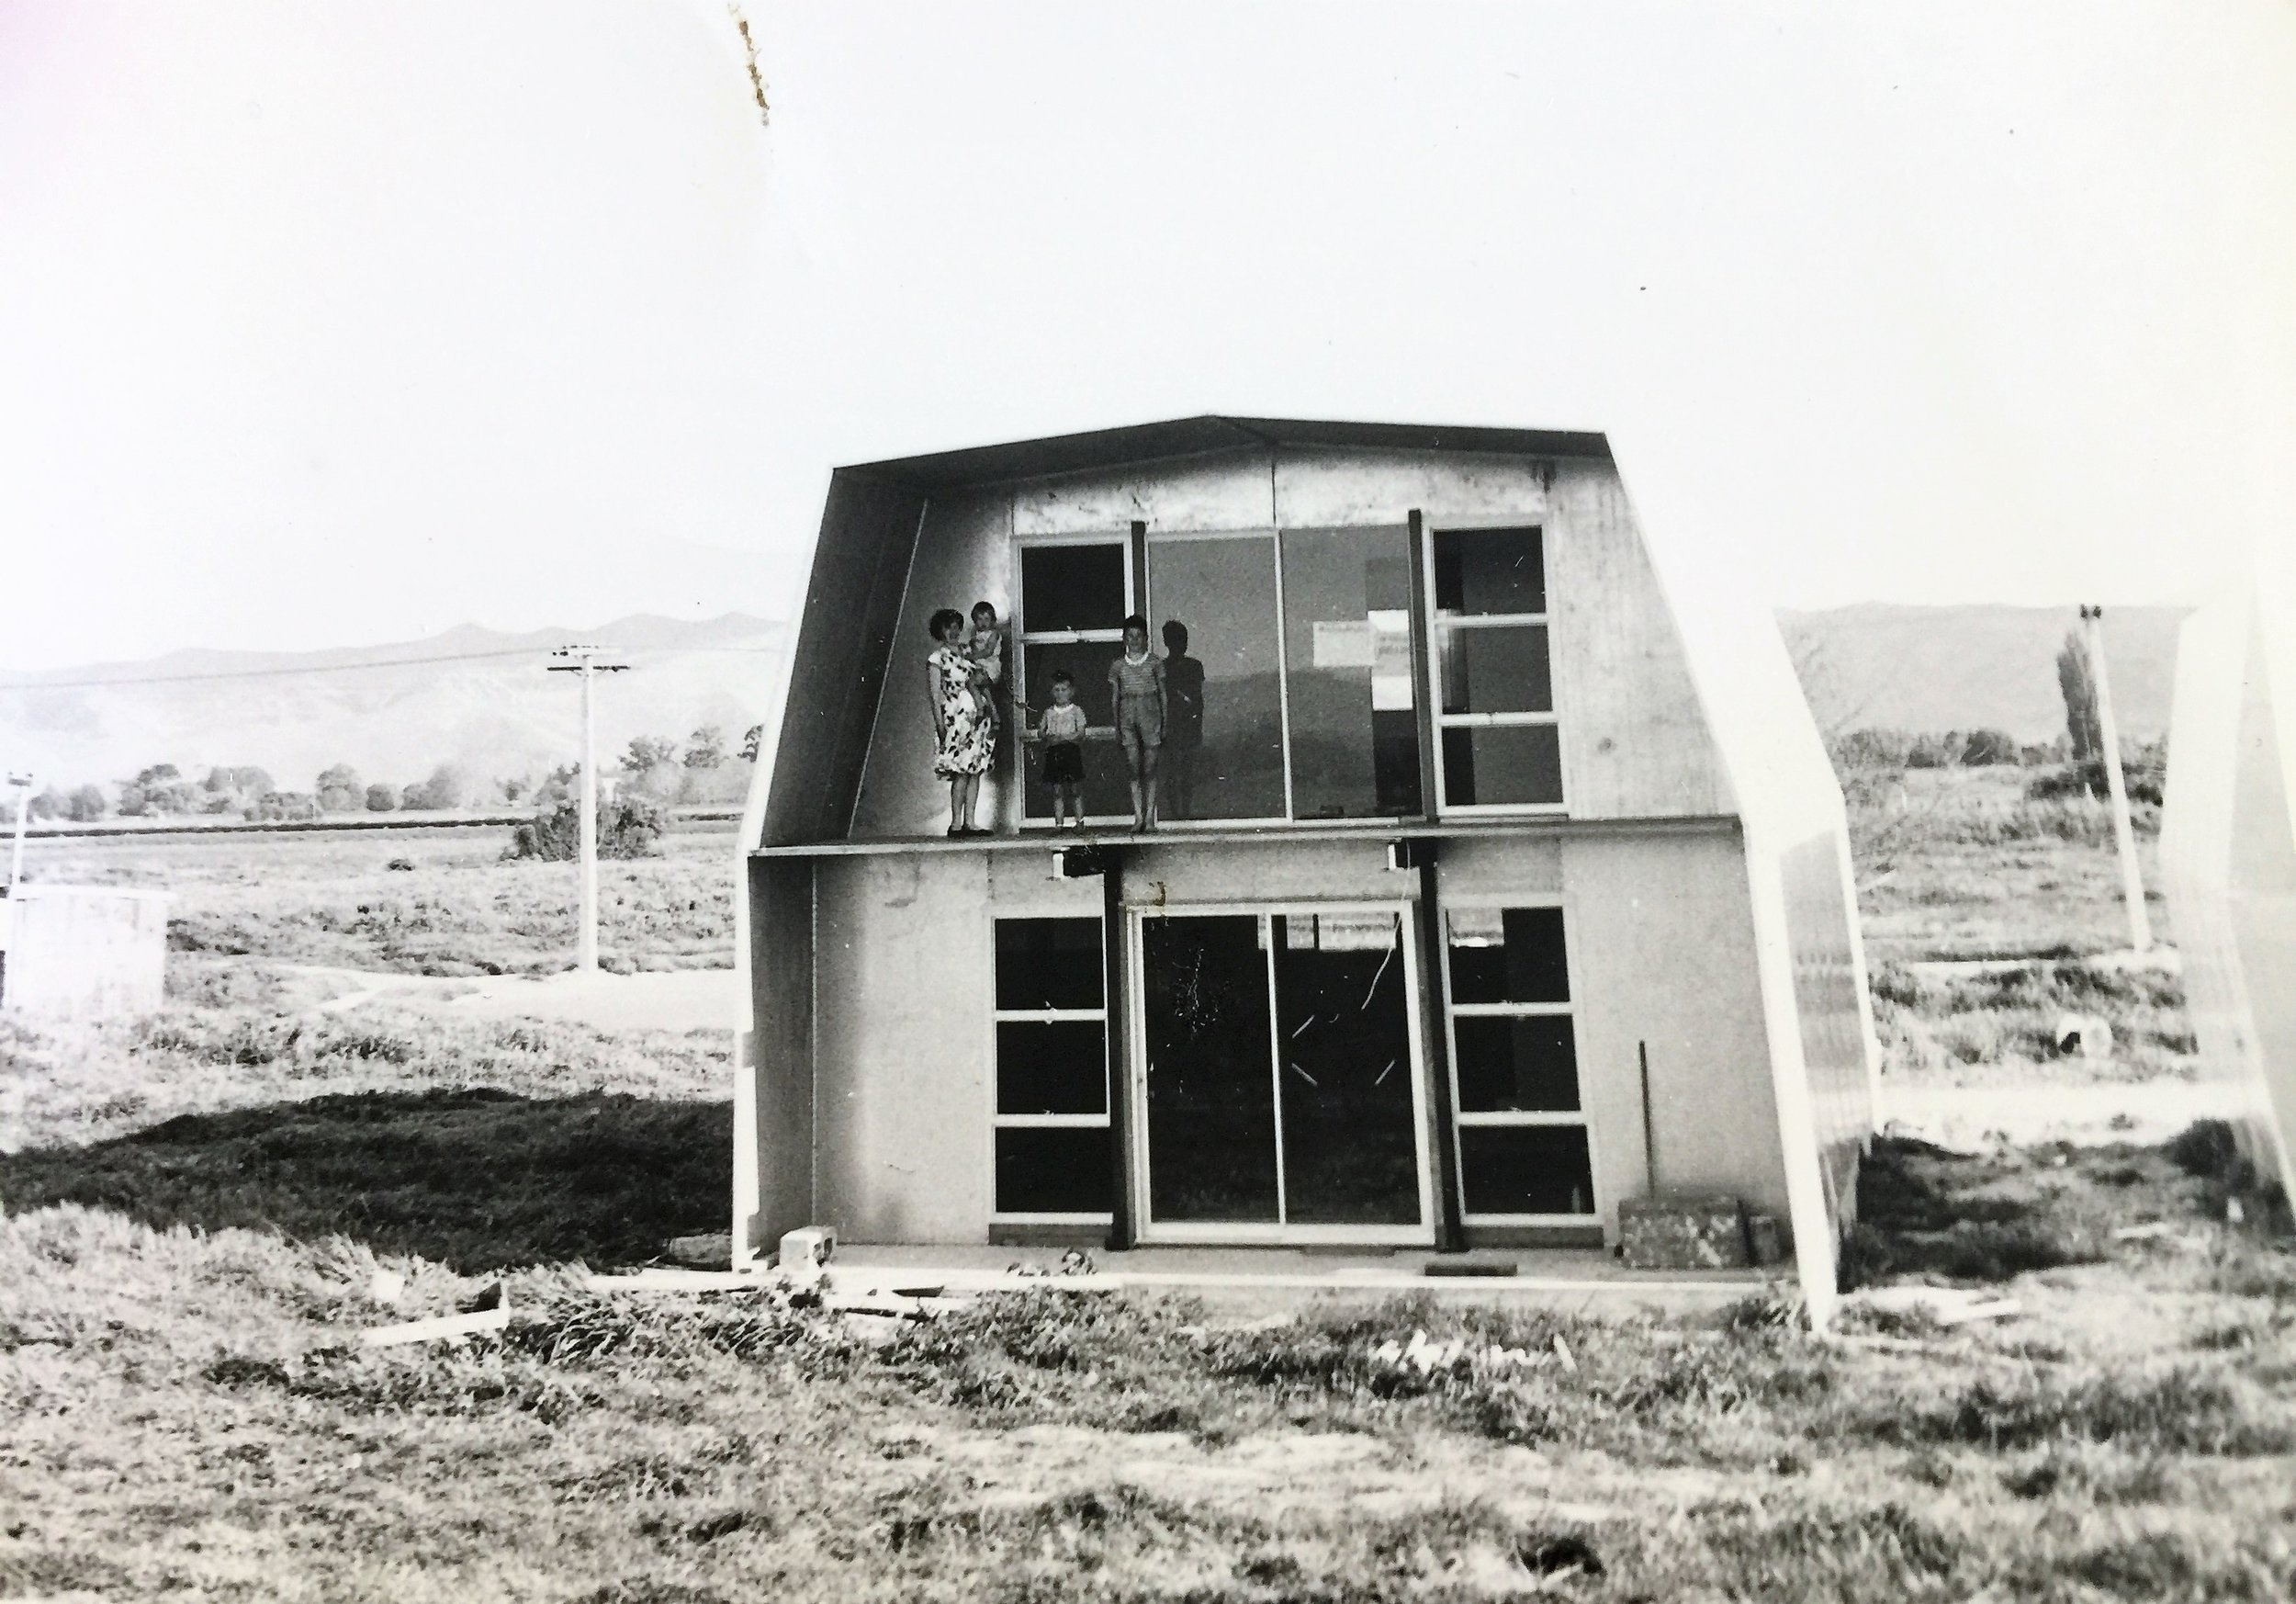 Innovation - A natural progression soon led to the development of Glenroy Housing and the development of some of the first prefabricated houses produced in New Zealand. Designed with pre-insulated panels they were well before their time.